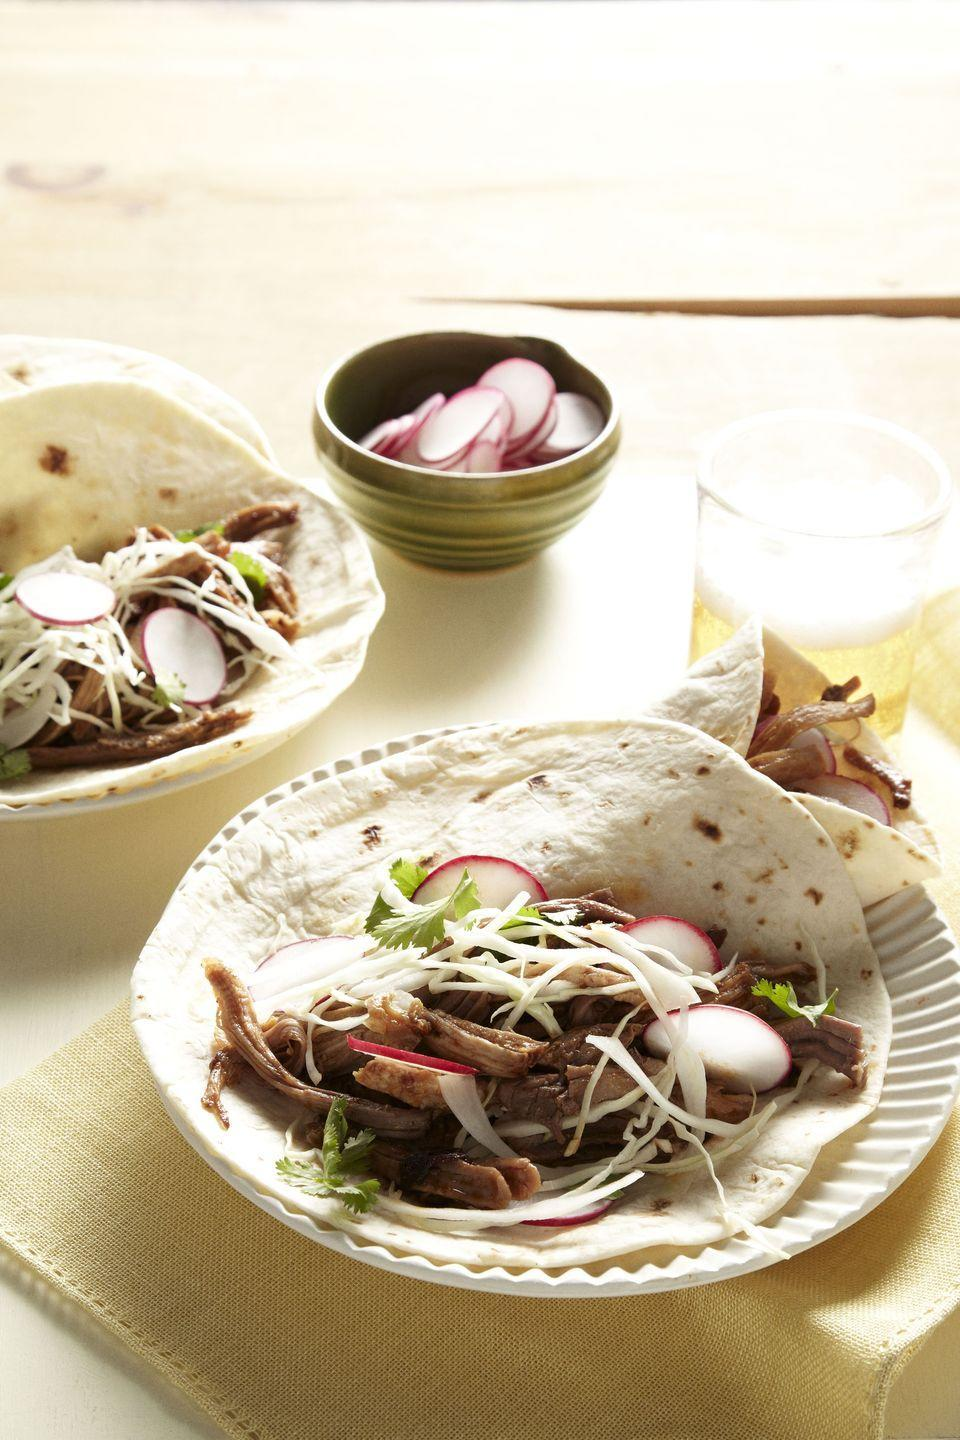 """<p>Prep the meat before work and arrive home to a delicious, ready-to-go taco night.</p><p><em><a href=""""https://www.goodhousekeeping.com/food-recipes/a14795/chipotle-pork-tacos-recipe-ghk0313/"""" rel=""""nofollow noopener"""" target=""""_blank"""" data-ylk=""""slk:Get the recipe for Chipotle Pork Tacos »"""" class=""""link rapid-noclick-resp"""">Get the recipe for Chipotle Pork Tacos »</a></em></p><p><strong>RELATED: </strong><a href=""""https://www.goodhousekeeping.com/food-recipes/g3463/cinco-de-mayo-taco-recipes/"""" rel=""""nofollow noopener"""" target=""""_blank"""" data-ylk=""""slk:20 Easy Recipes for Taco Tuesday"""" class=""""link rapid-noclick-resp"""">20 Easy Recipes for Taco Tuesday</a></p>"""